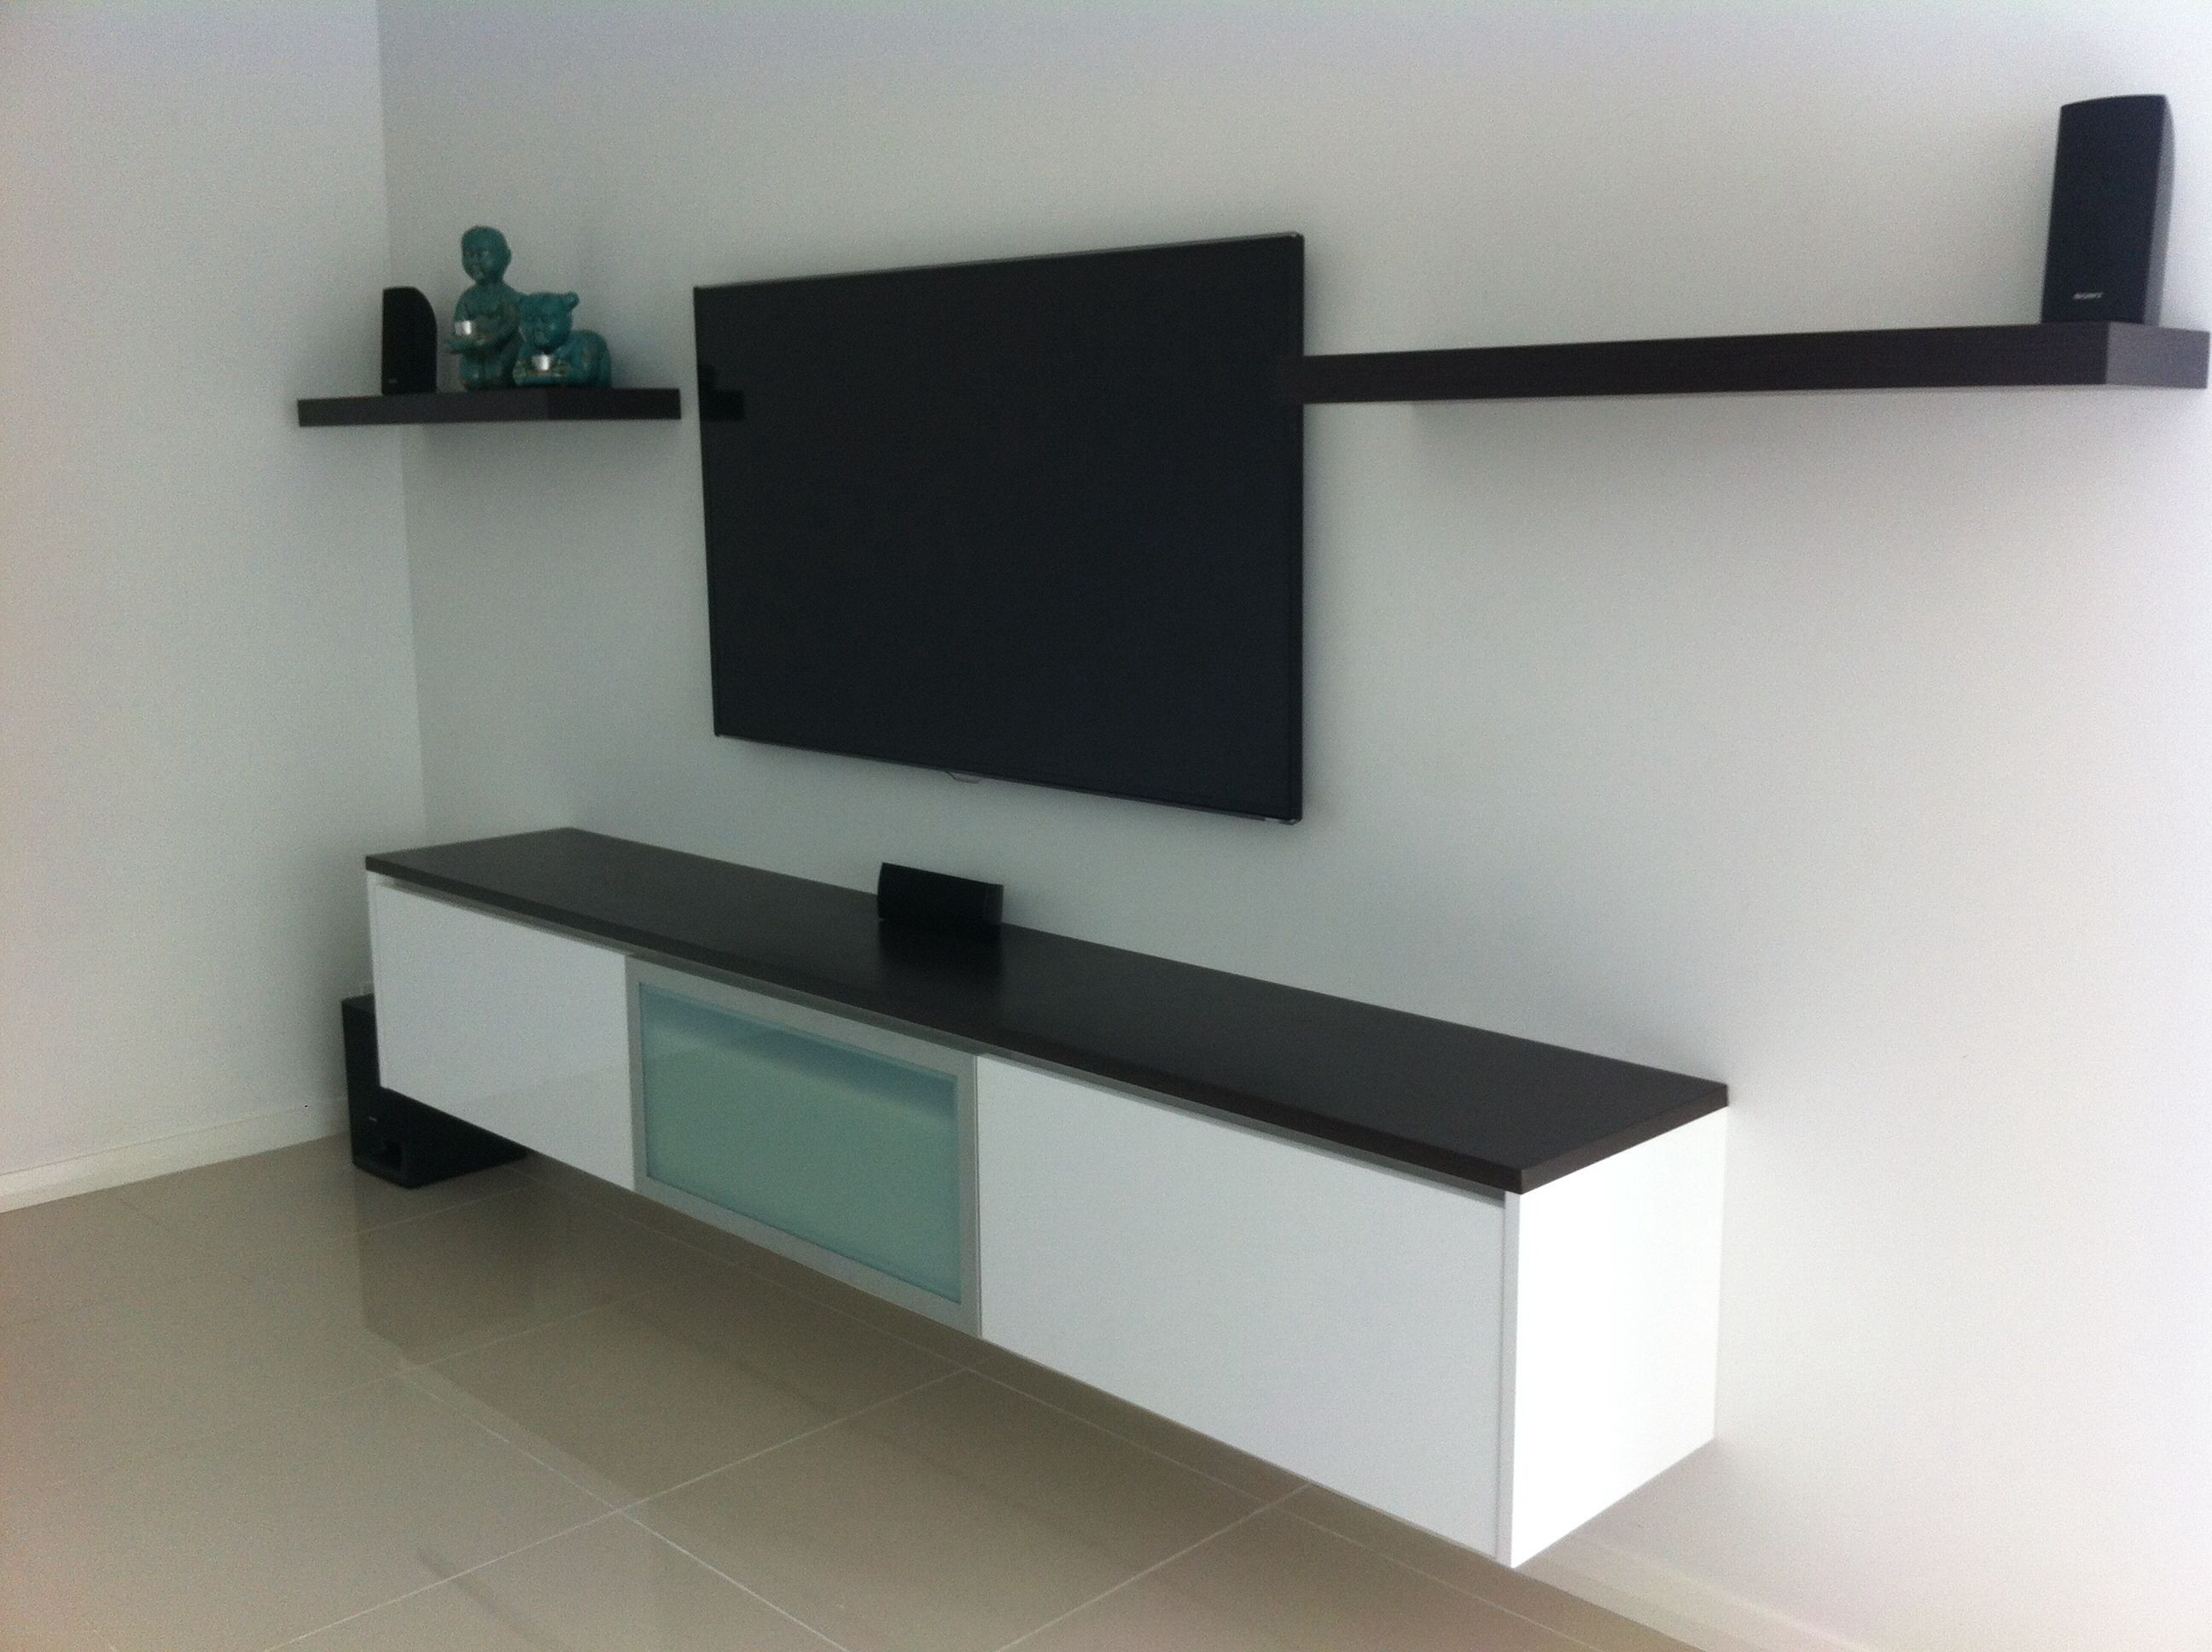 Design Floating Cabinets floating wall cabinet media theatre pinterest cabinet